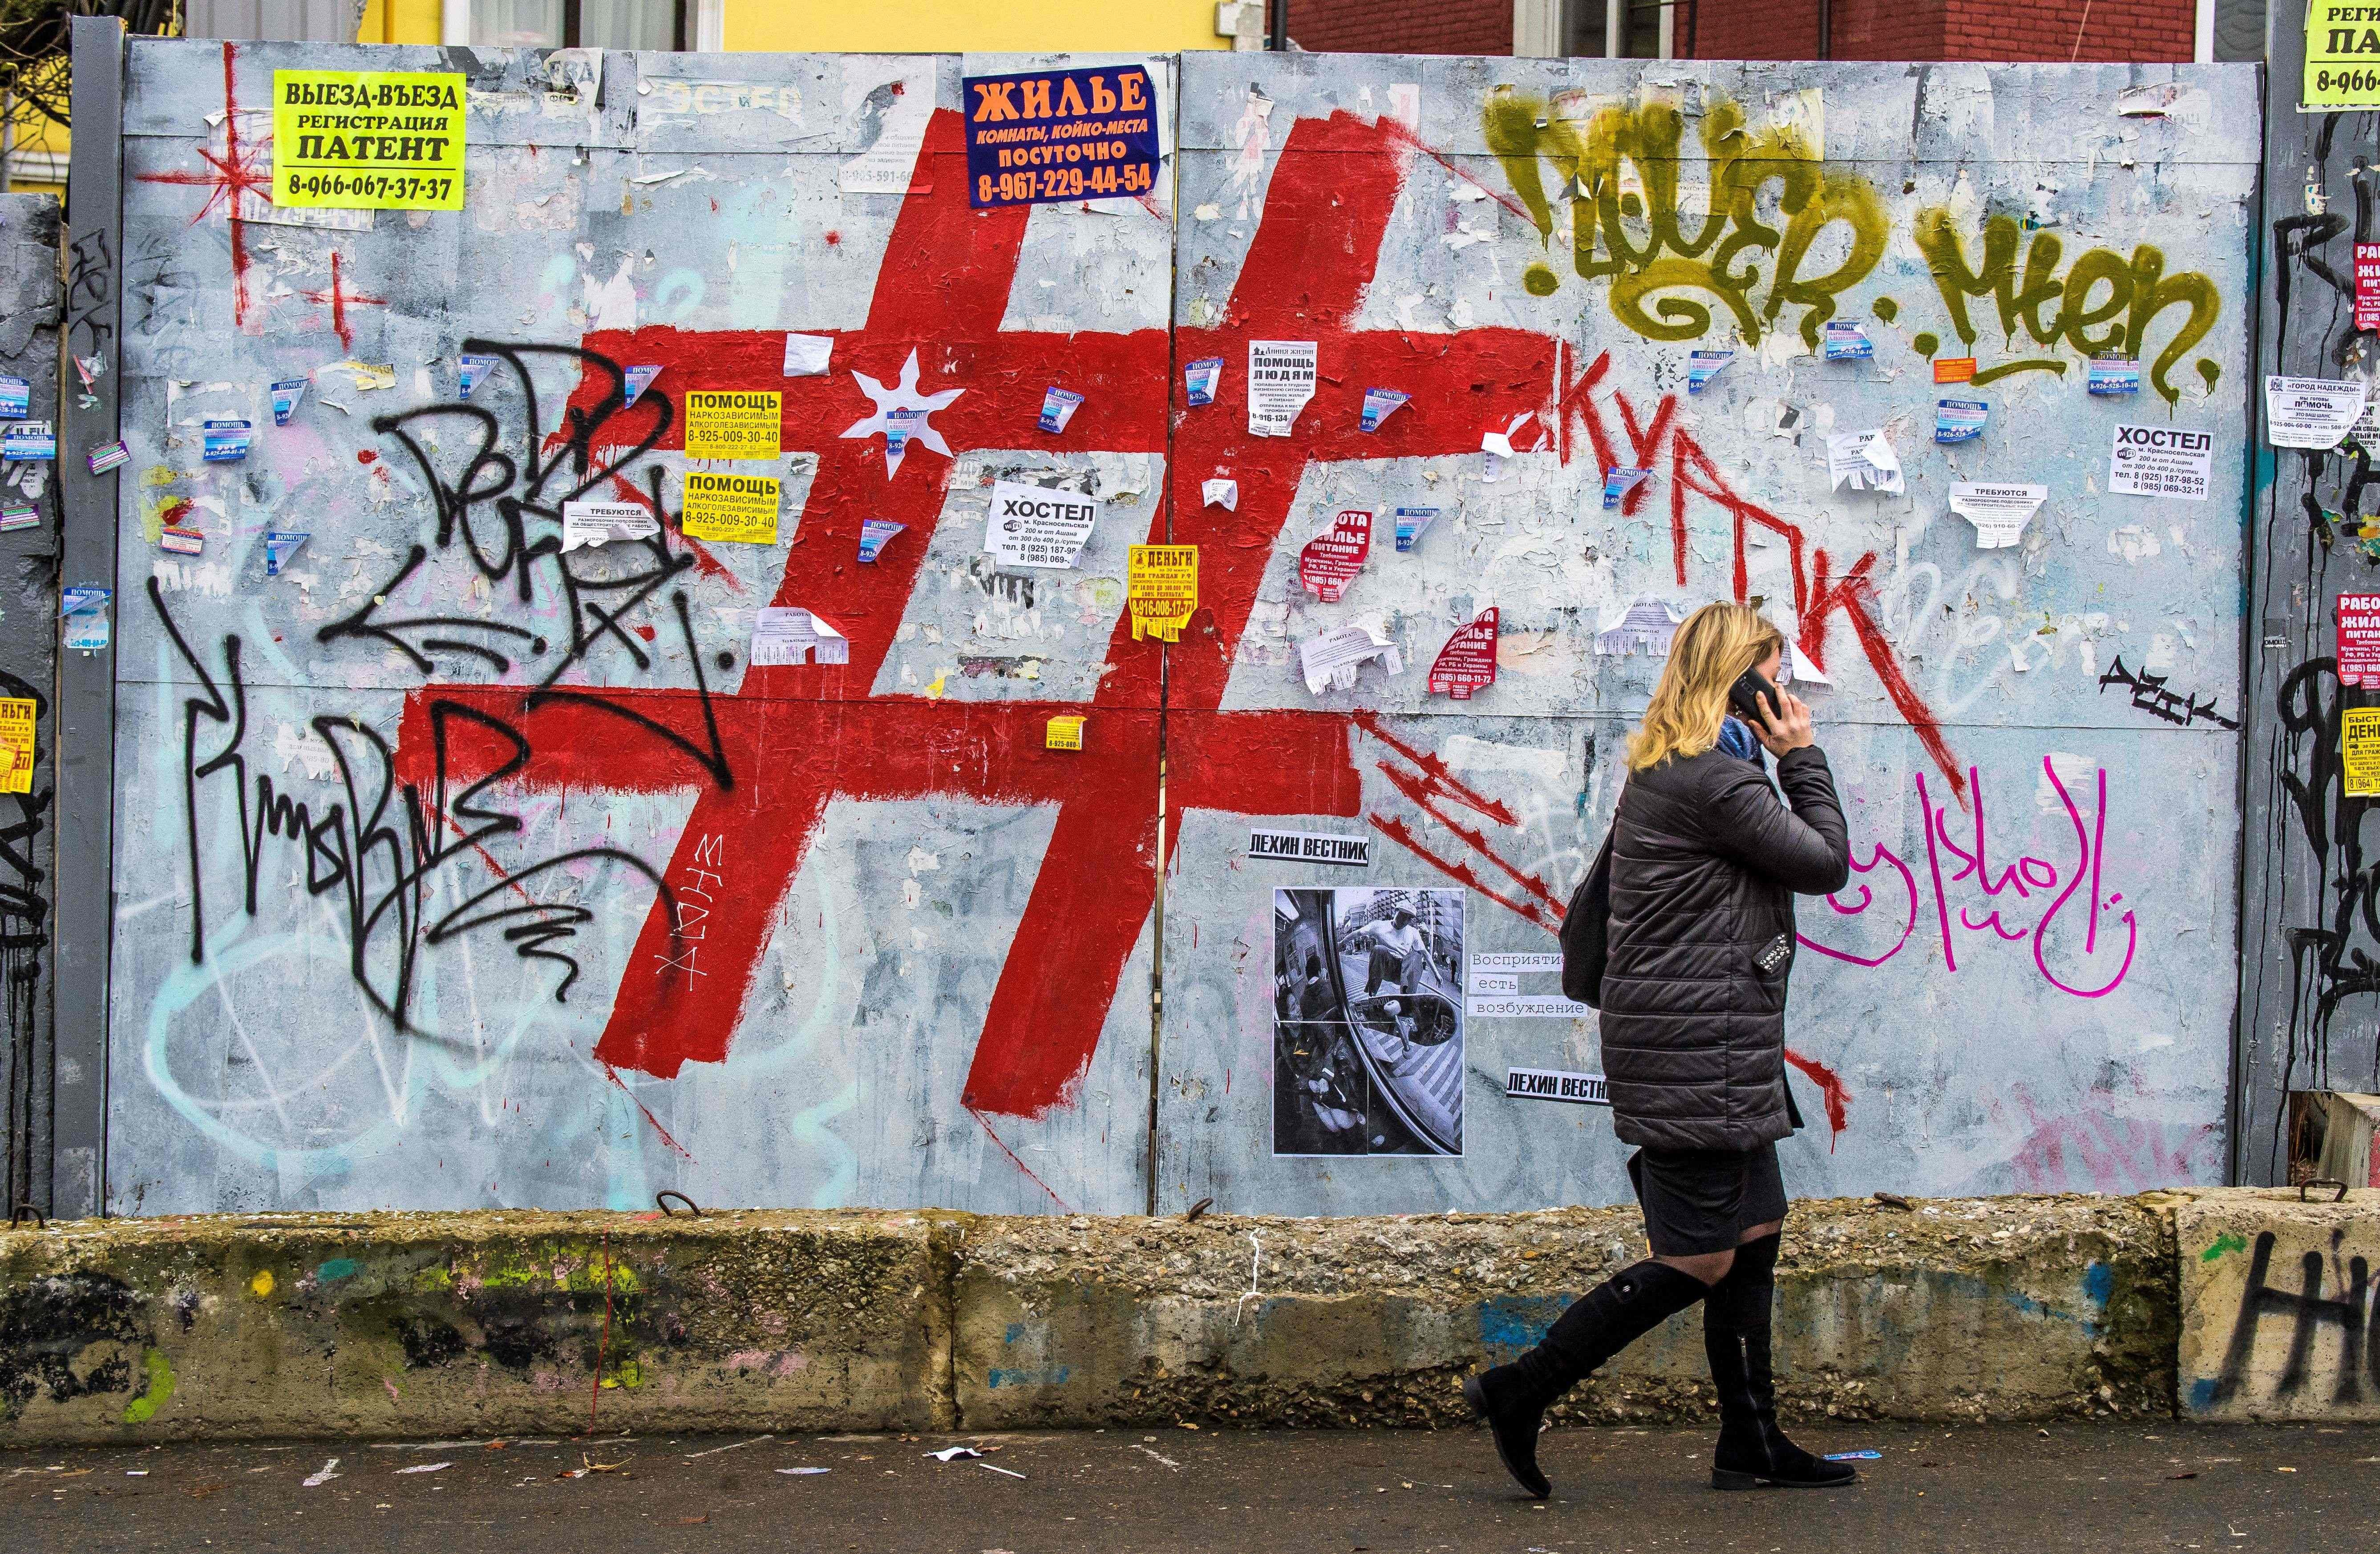 A woman speaks on a mobile phone as she walks past a graffiti covered wall with a giant hashtag sign near Moscow's Kursky railway station on November 17, 2017. / AFP PHOTO / Mladen ANTONOV        (Photo credit should read MLADEN ANTONOV/AFP/Getty Images)